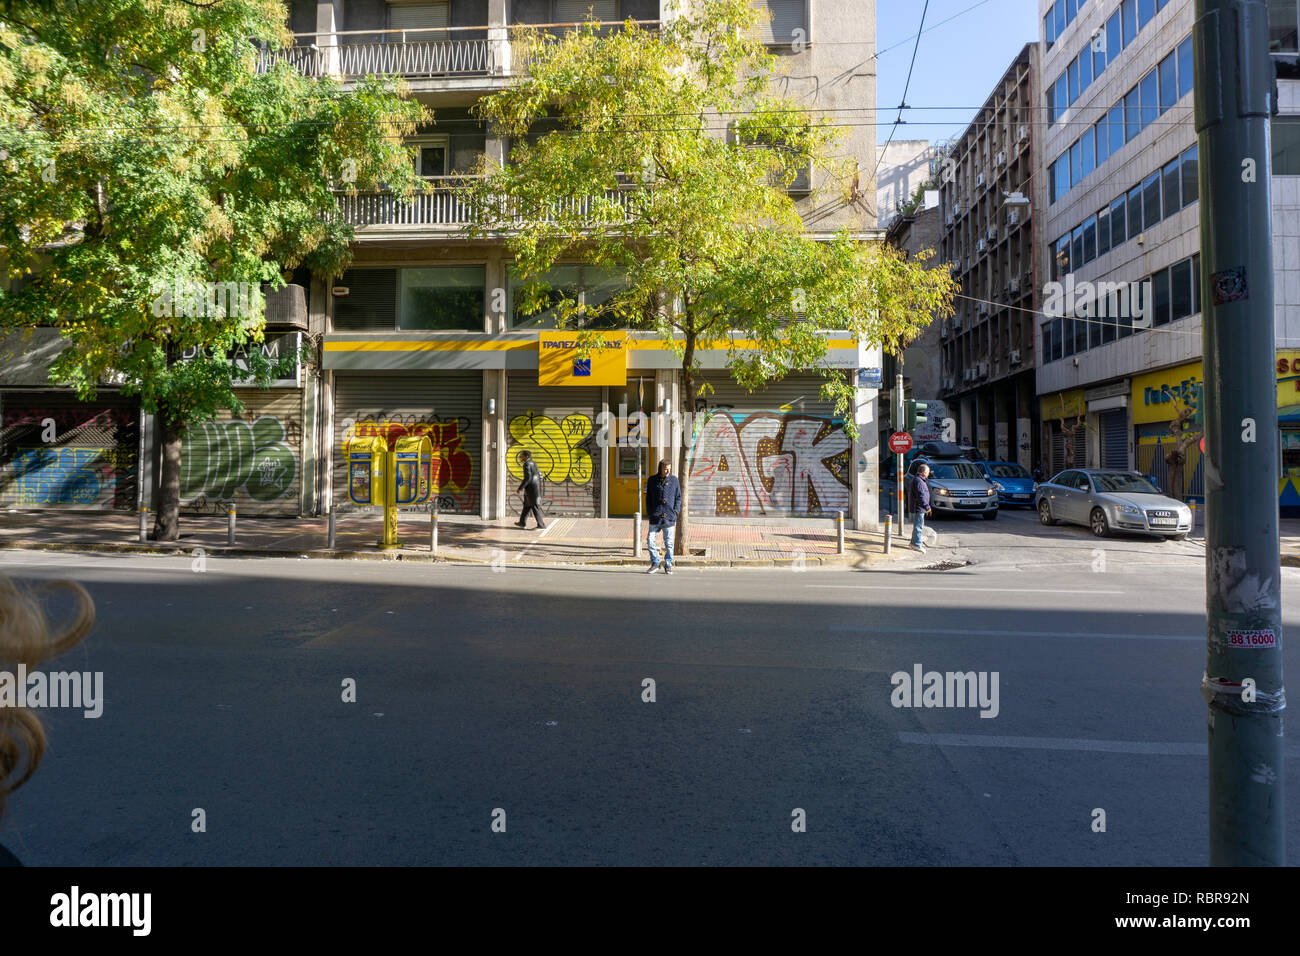 I tried to capture the mundane of Athens as I was strolling along the city. There is a friendly and relaxed vibe everywhere. I love this city! - Stock Image